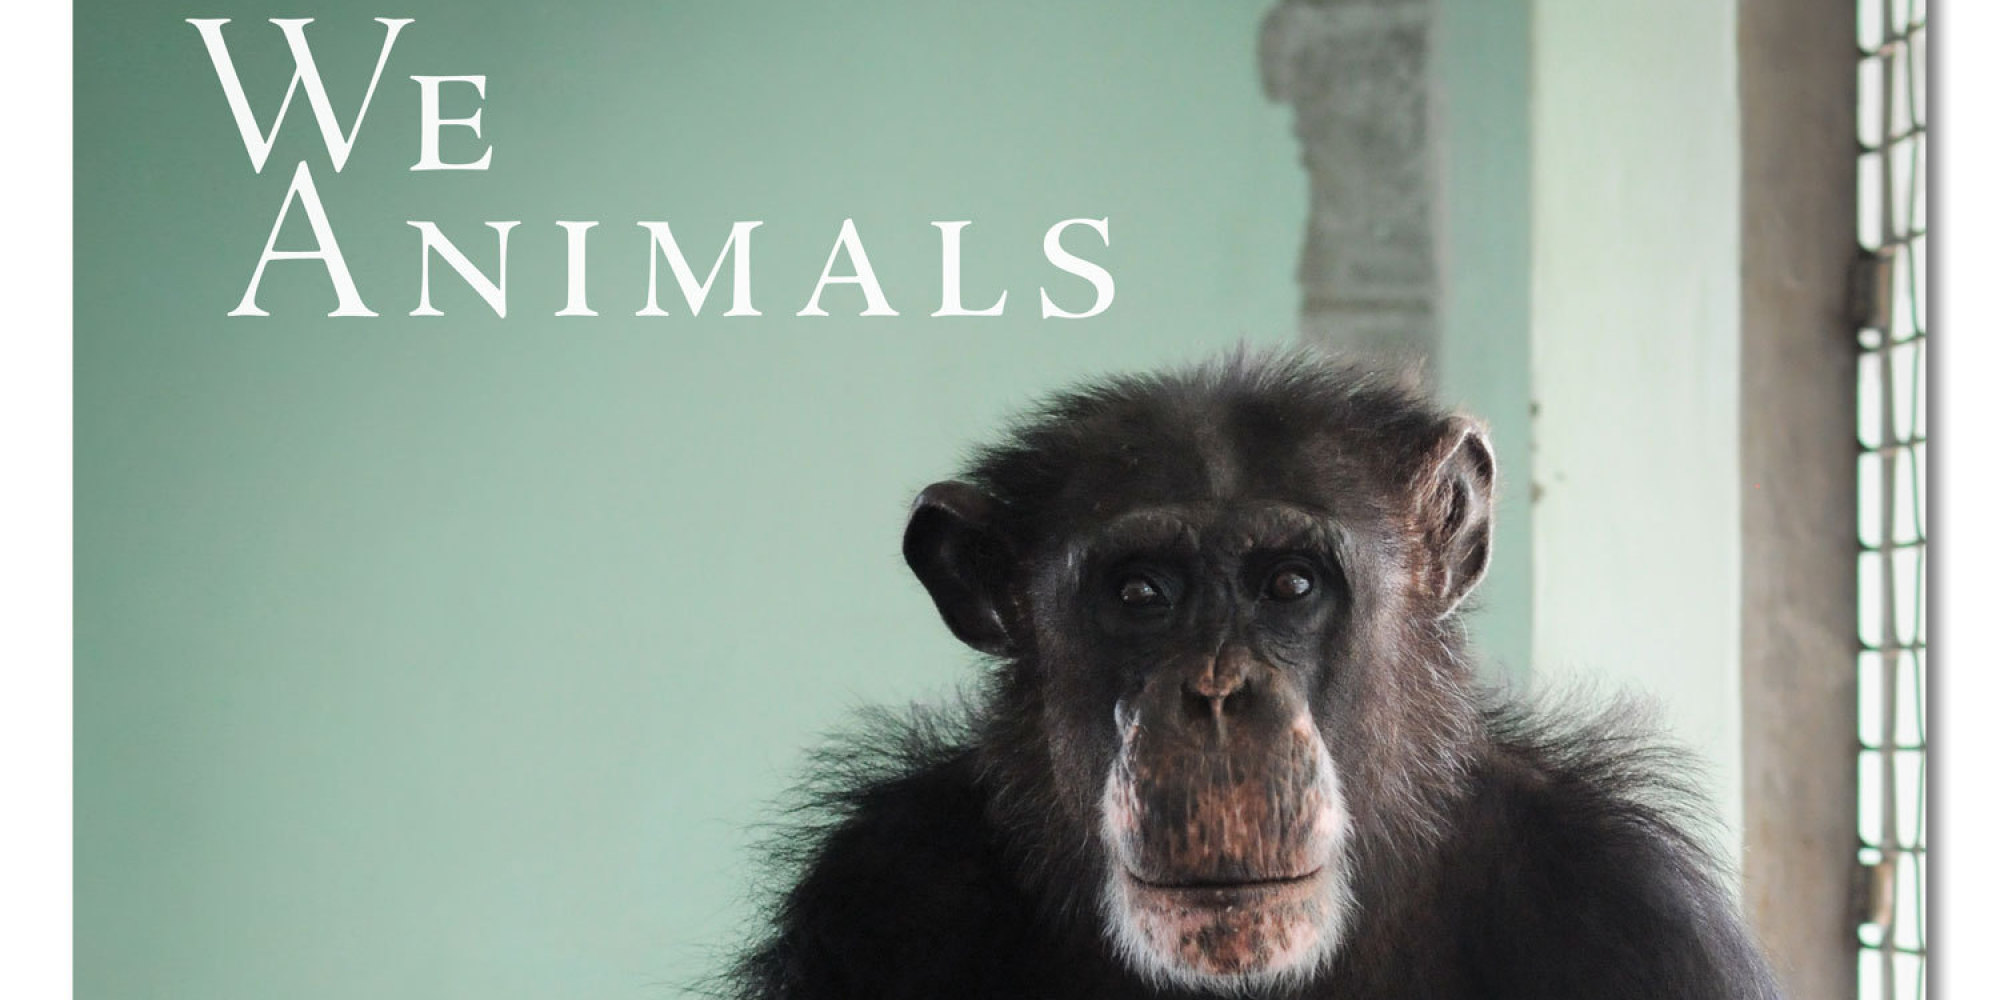 We Animals Book Exposes Sadness Of Animal Captivity With